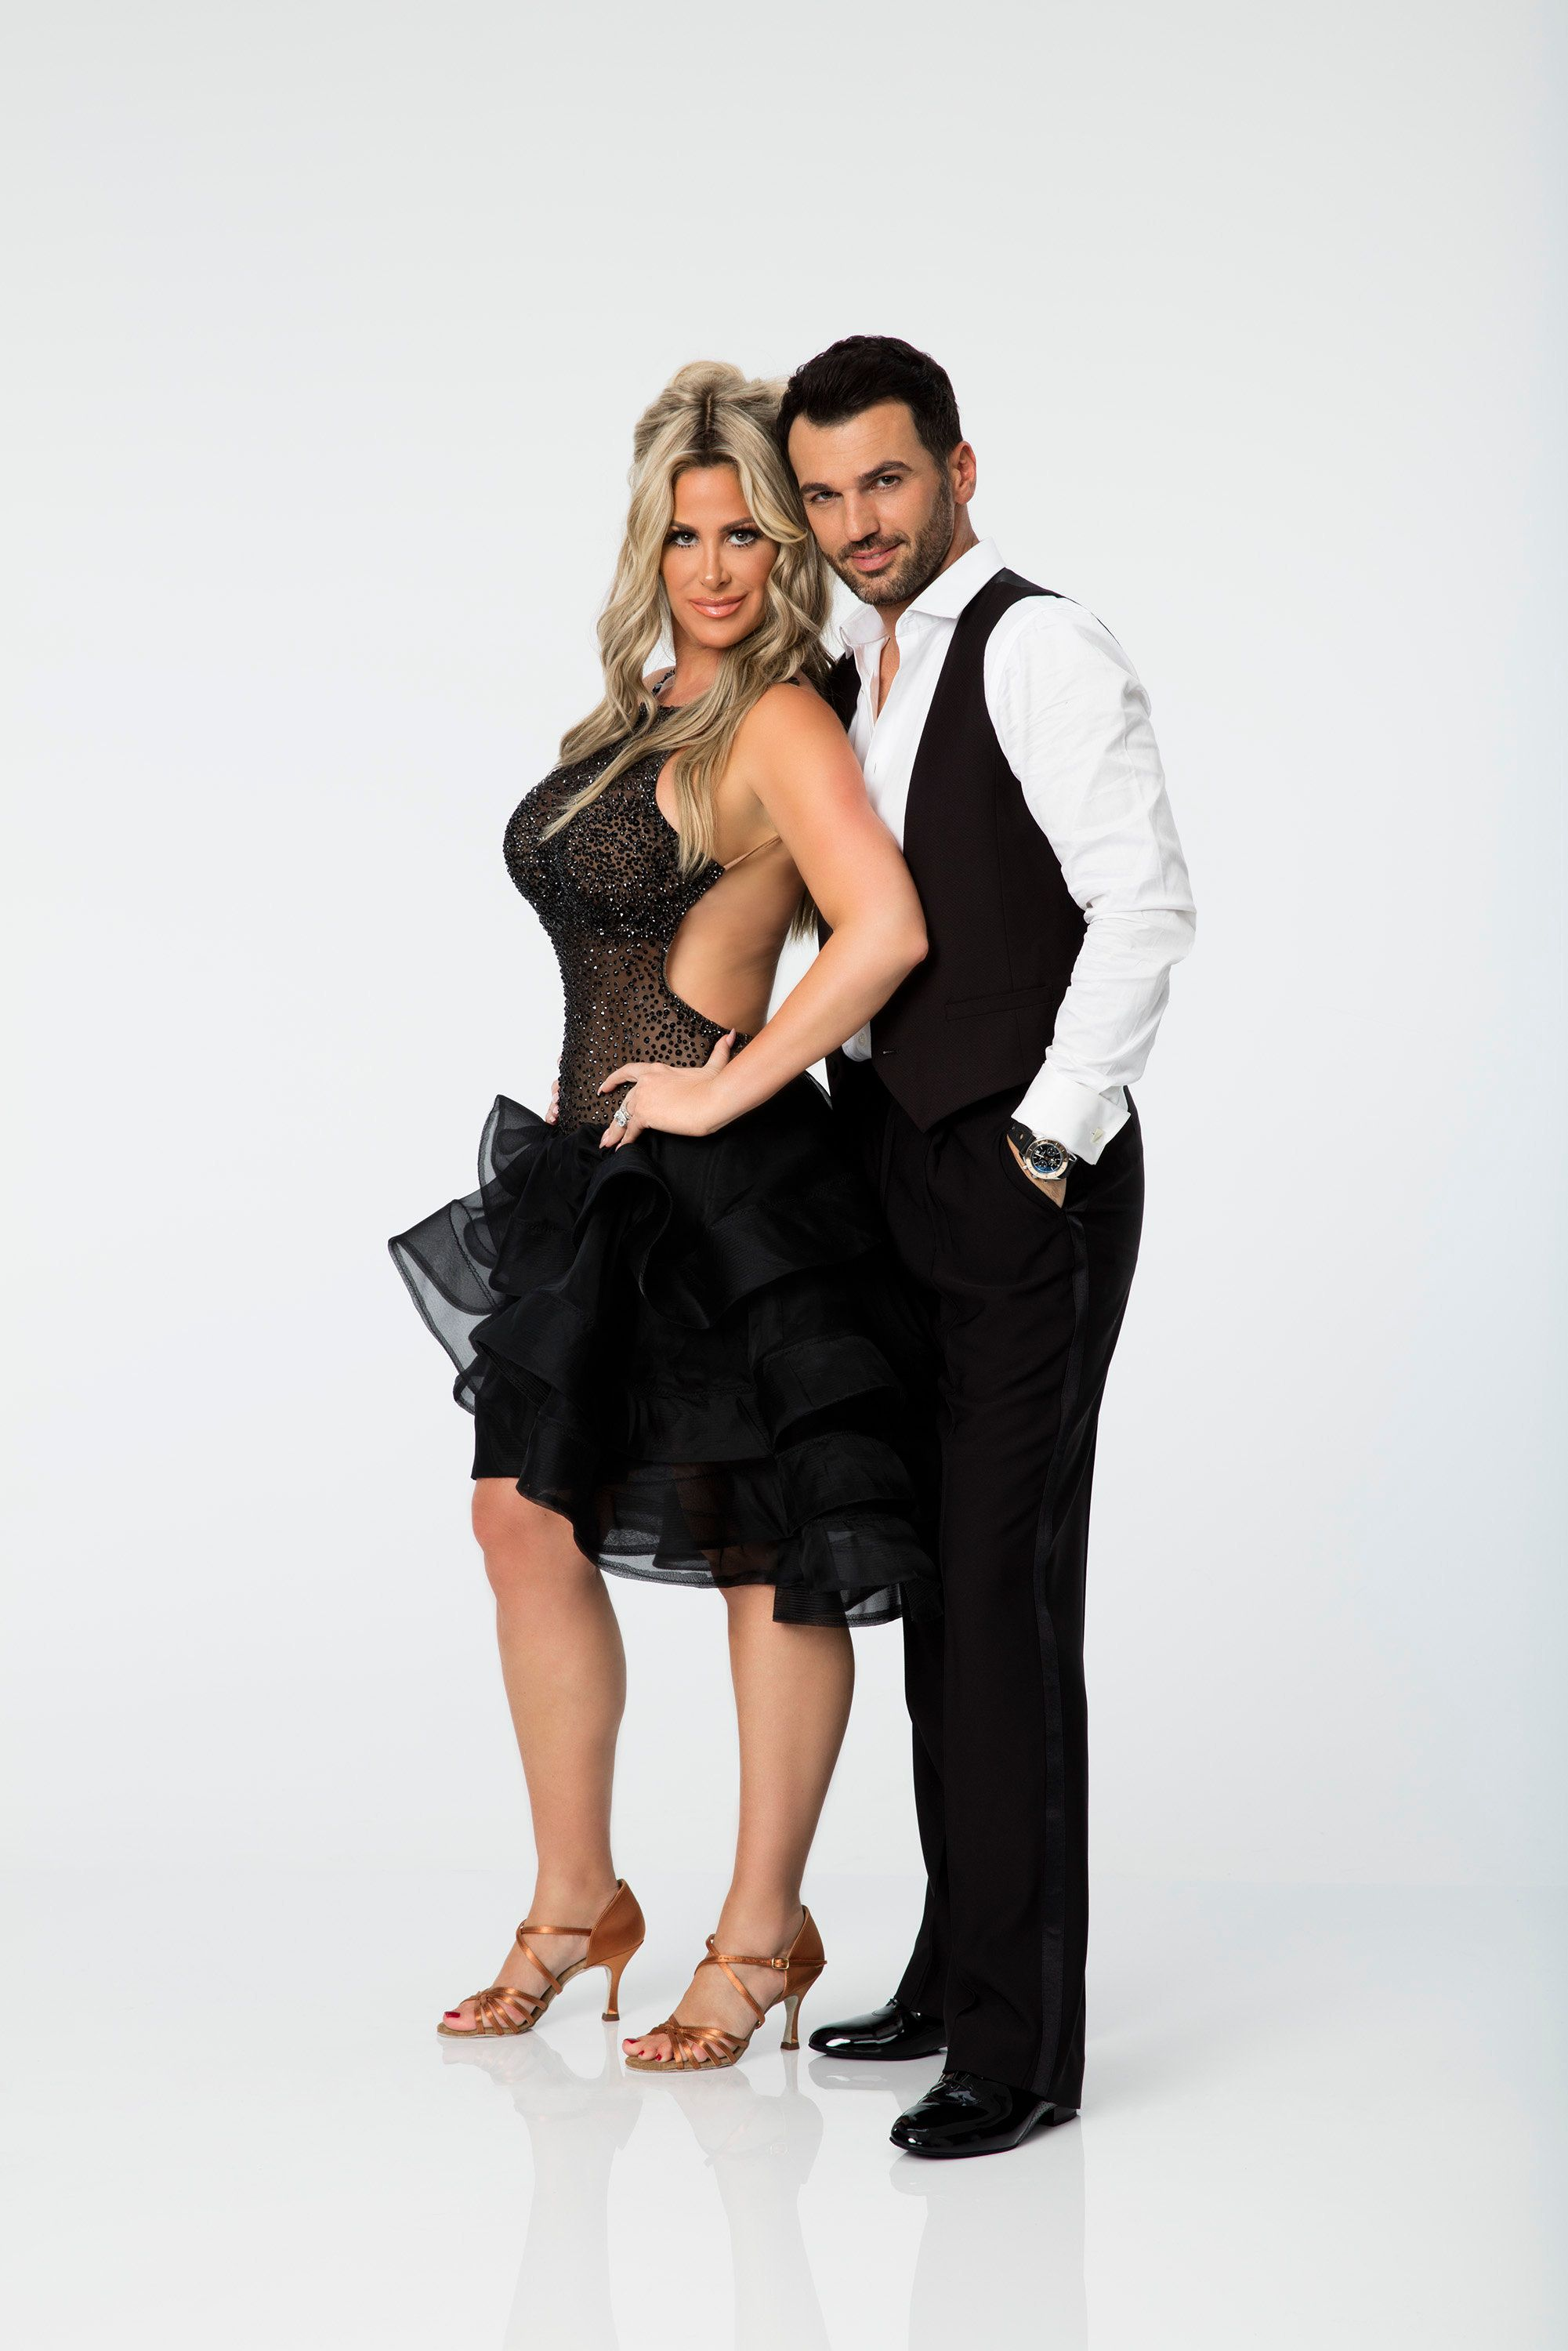 DANCING WITH THE STARS - KIM ZOLCIAK BIERMANN & TONY DOVOLANI - The celebrity cast of 'Dancing with the Stars' is lacing up their ballroom shoes and getting ready for their first dance on MONDAY, SEPTEMBER 14 (8:00-10:01 p.m., ET) on the ABC Television Network. Kim Zolciak Biermann is partnered with Tony Dovolani. (Craig Sjodin/ABC via Getty Images)